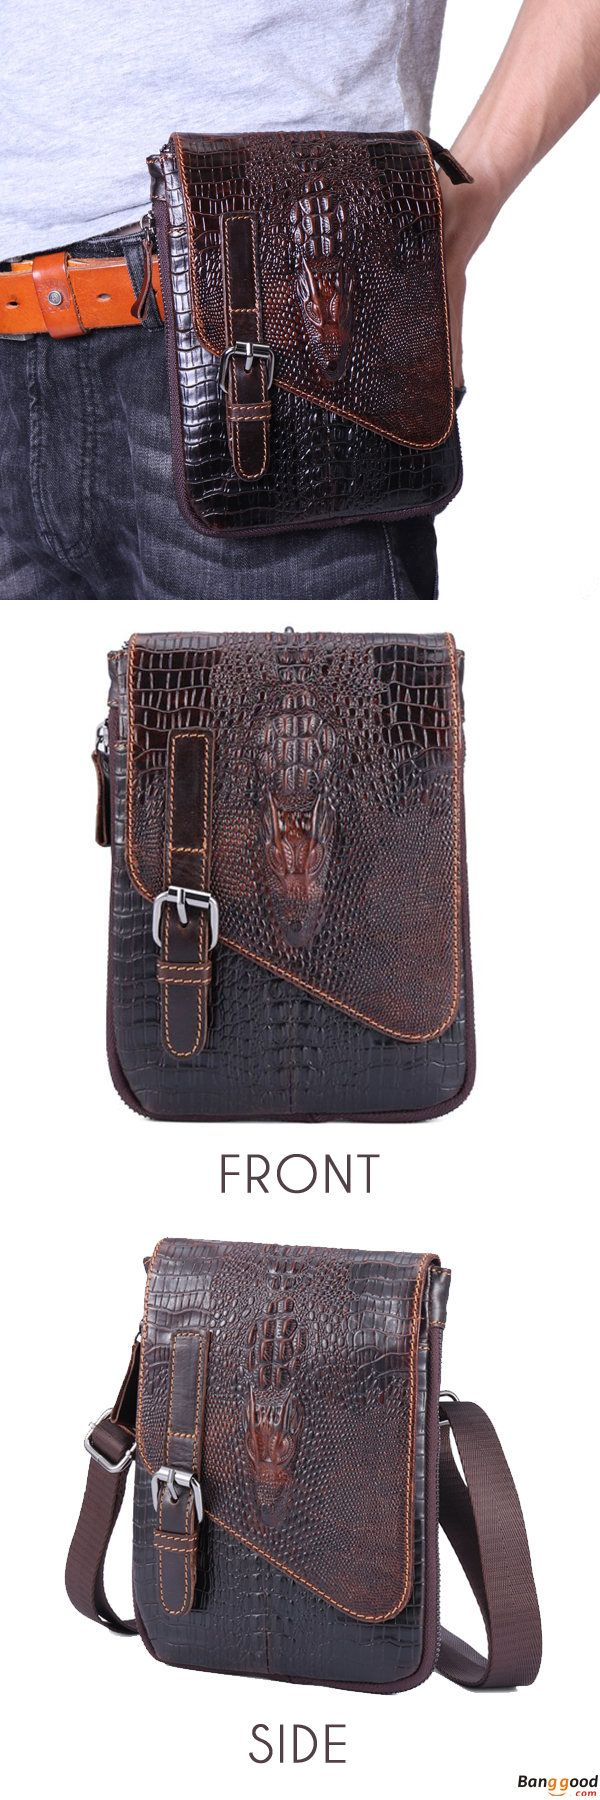 US$36.13 + Free Shipping. 6 inches Men Genuine Leather Waist Bag Alligator Pattern Minimalist Casual Phone Bag Crossbody Bag. Material: Genuine Leather. Hook, Strap or Belt.